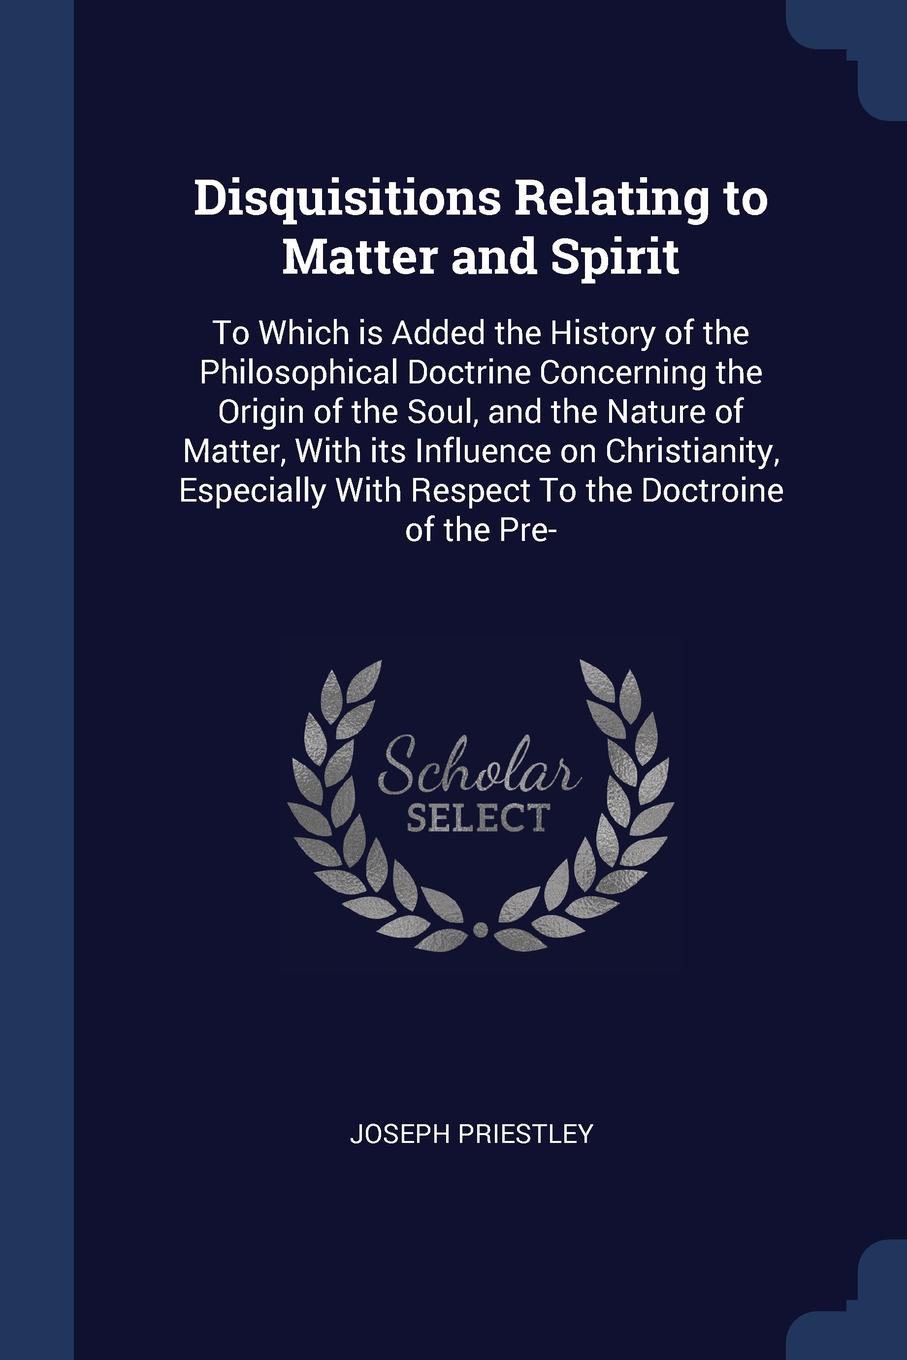 Joseph Priestley Disquisitions Relating to Matter and Spirit. To Which is Added the History of the Philosophical Doctrine Concerning the Origin of the Soul, and the Nature of Matter, With its Influence on Christianity, Especially With Respect To the Doctroine of t... цена в Москве и Питере